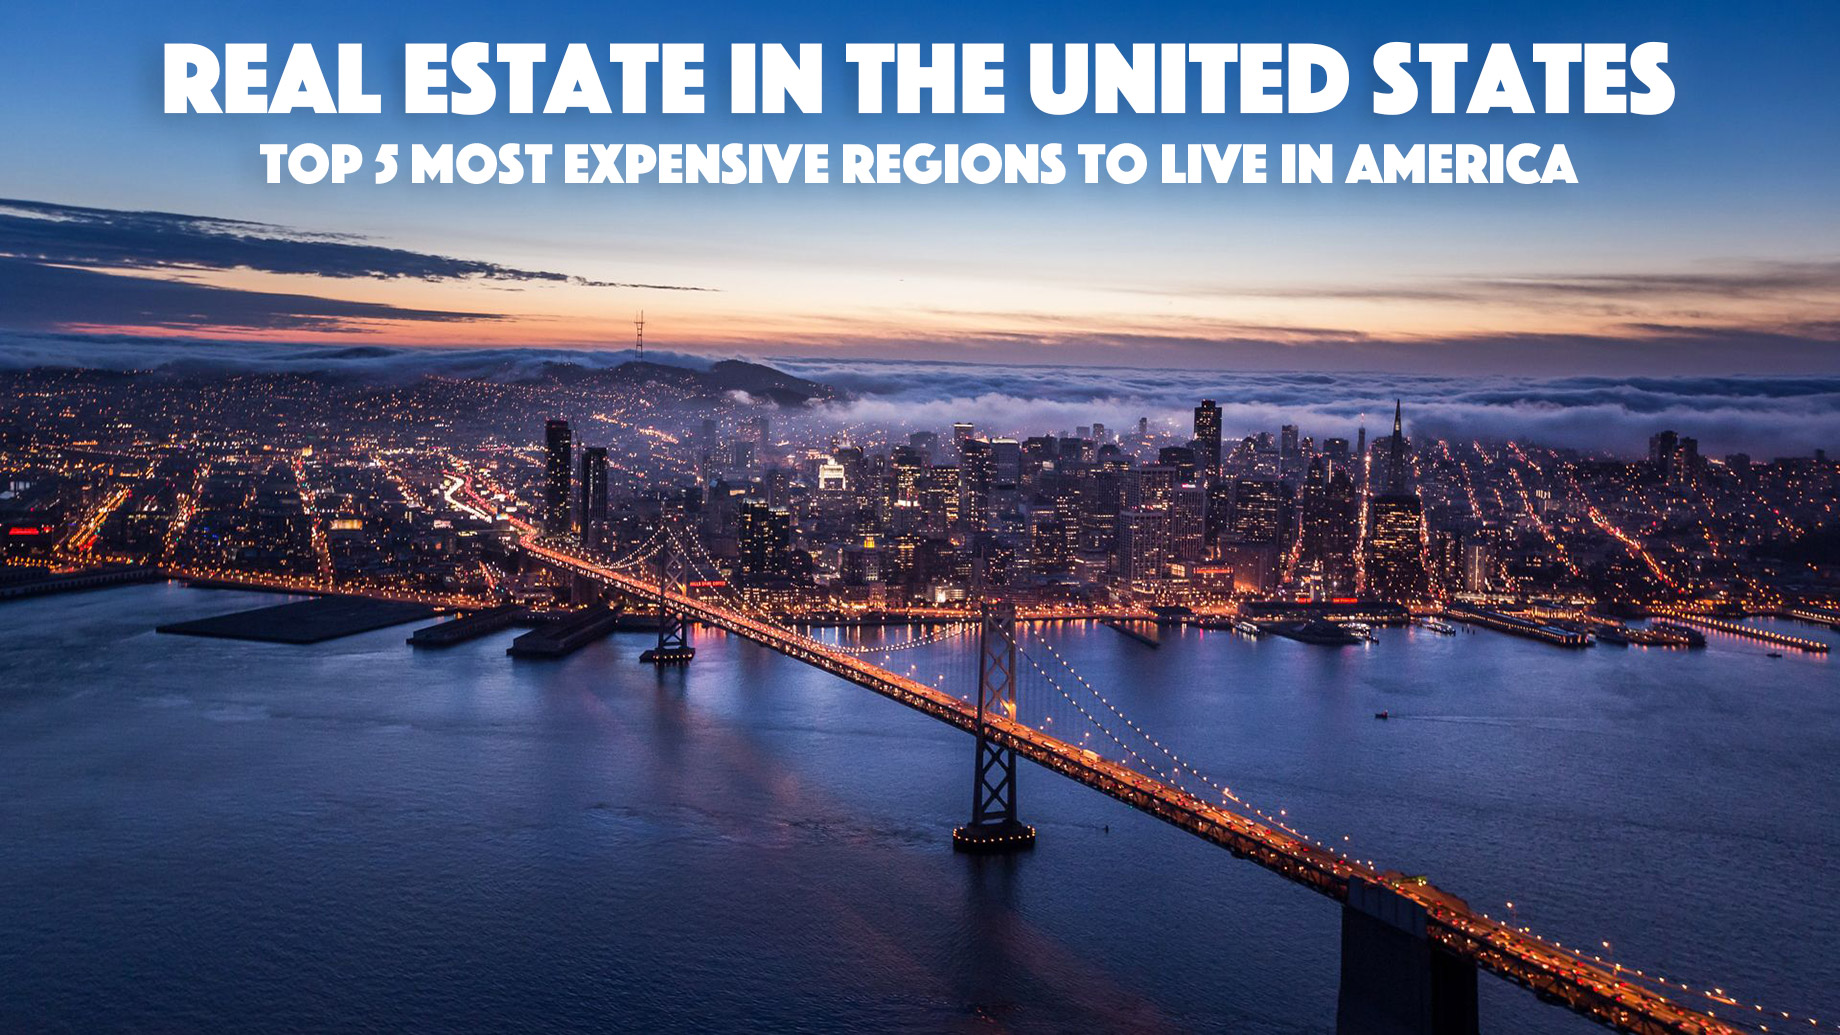 Real Estate in the United States - Top 5 Most Expensive Regions to Live in America